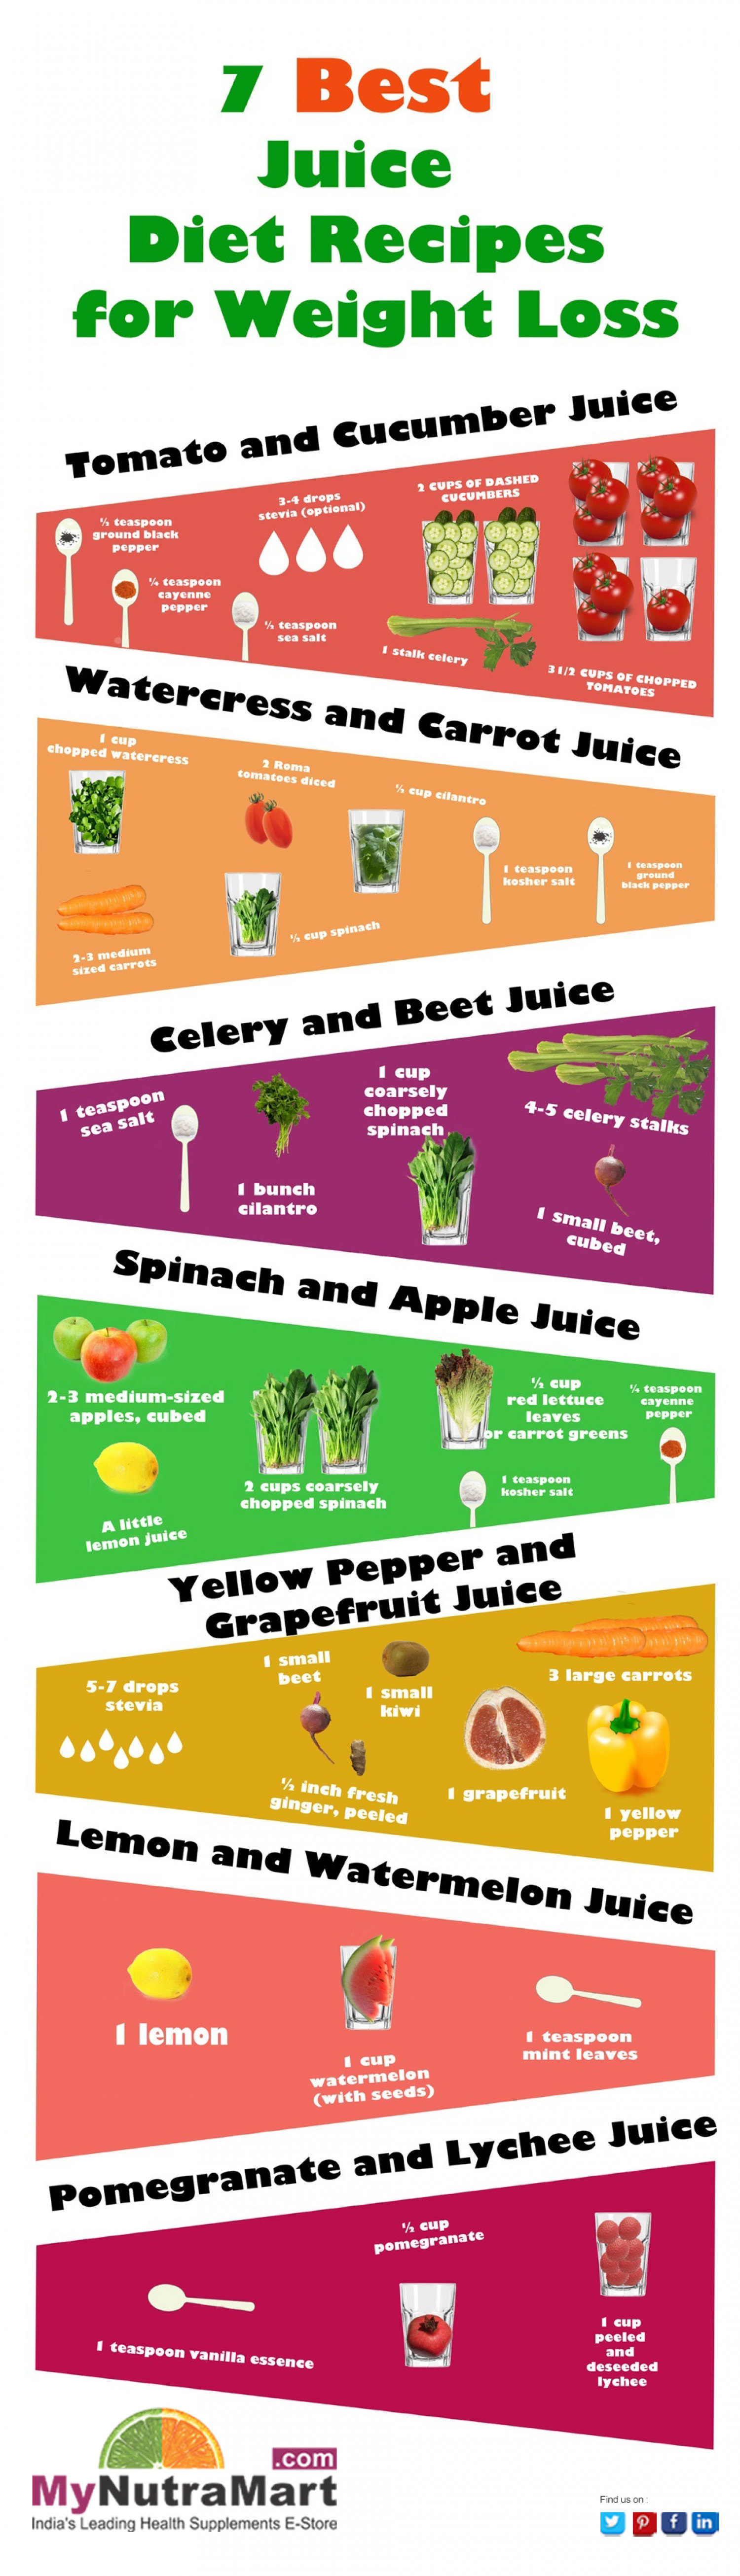 7 best juice diet recipes for weight loss visual 7 best juice diet recipes for weight loss infographic ccuart Images